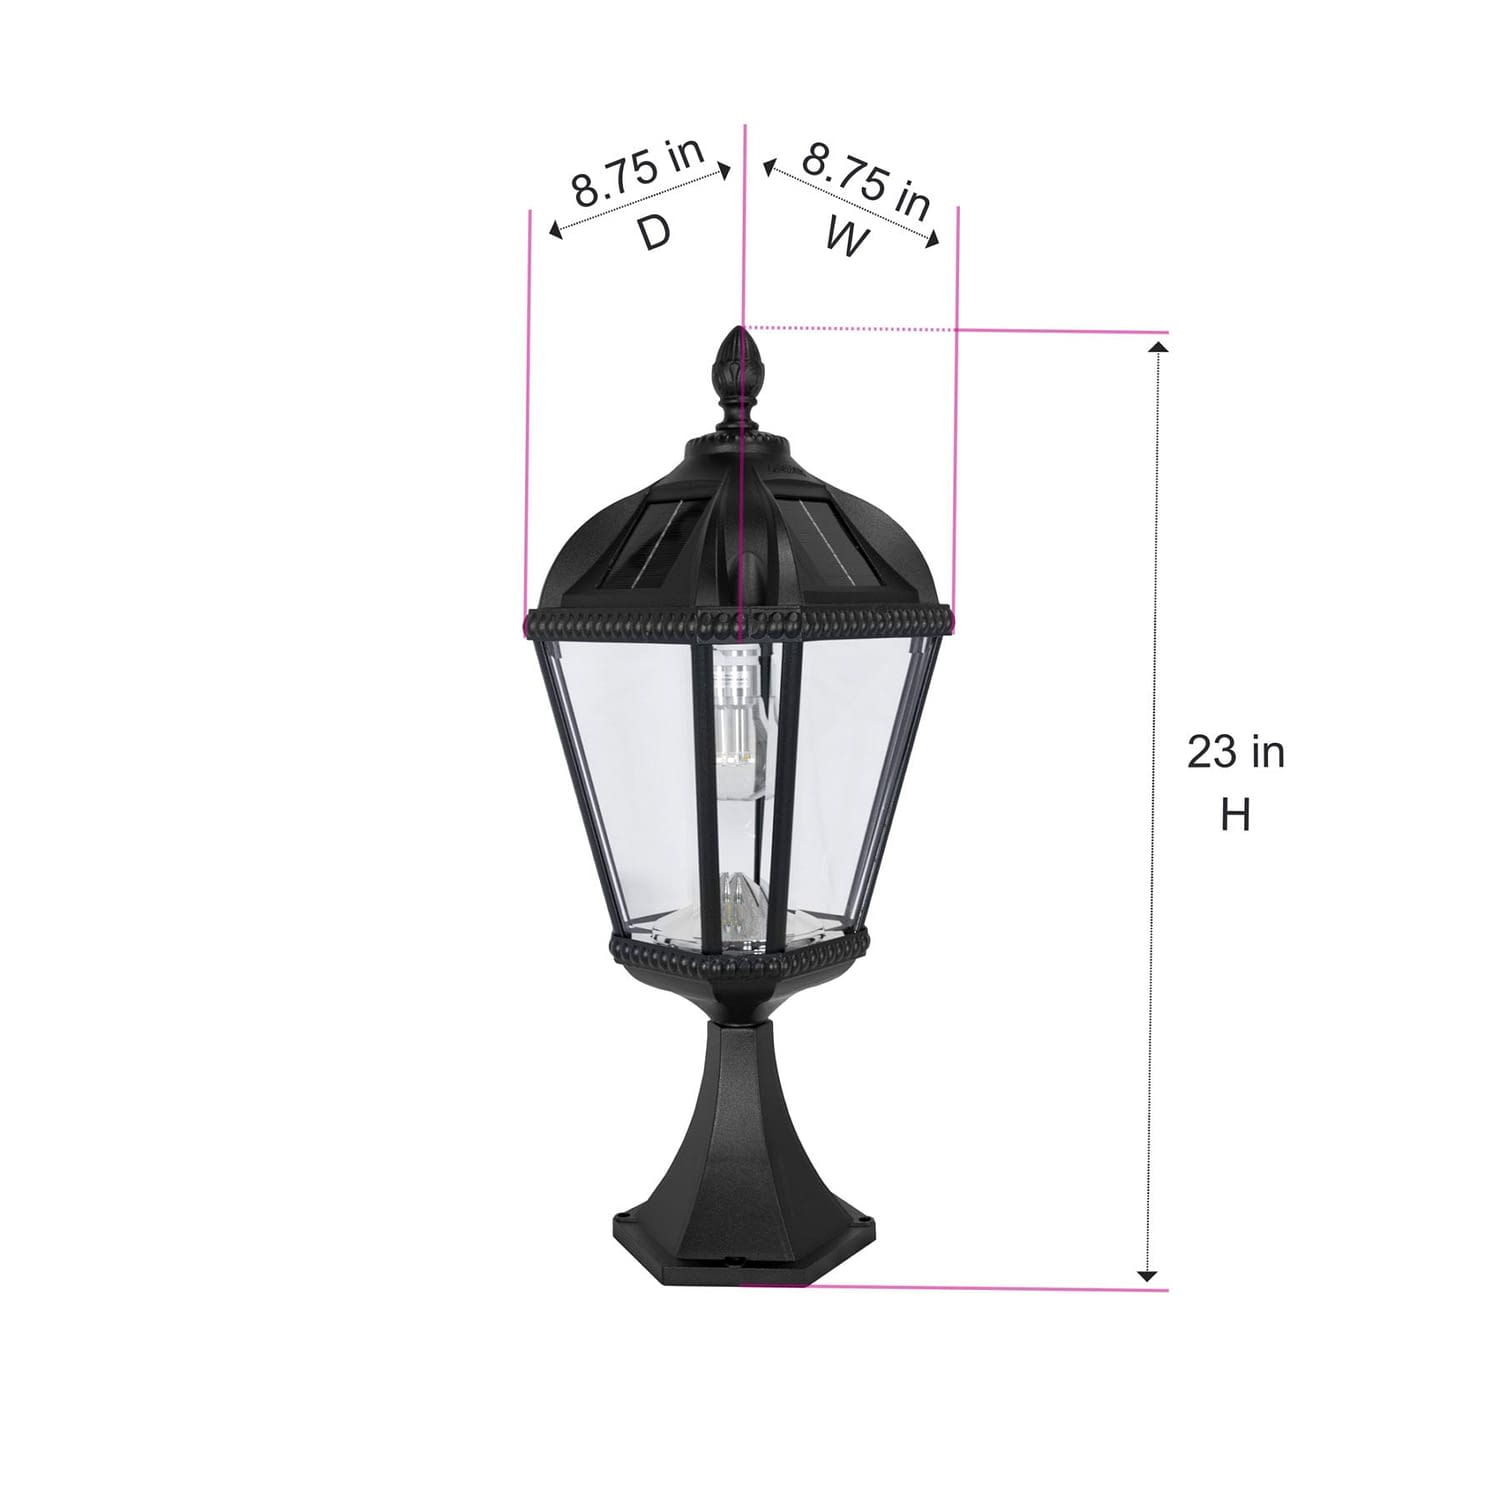 Royal Bulb Pier Mount Solar Lamp - Dimensions